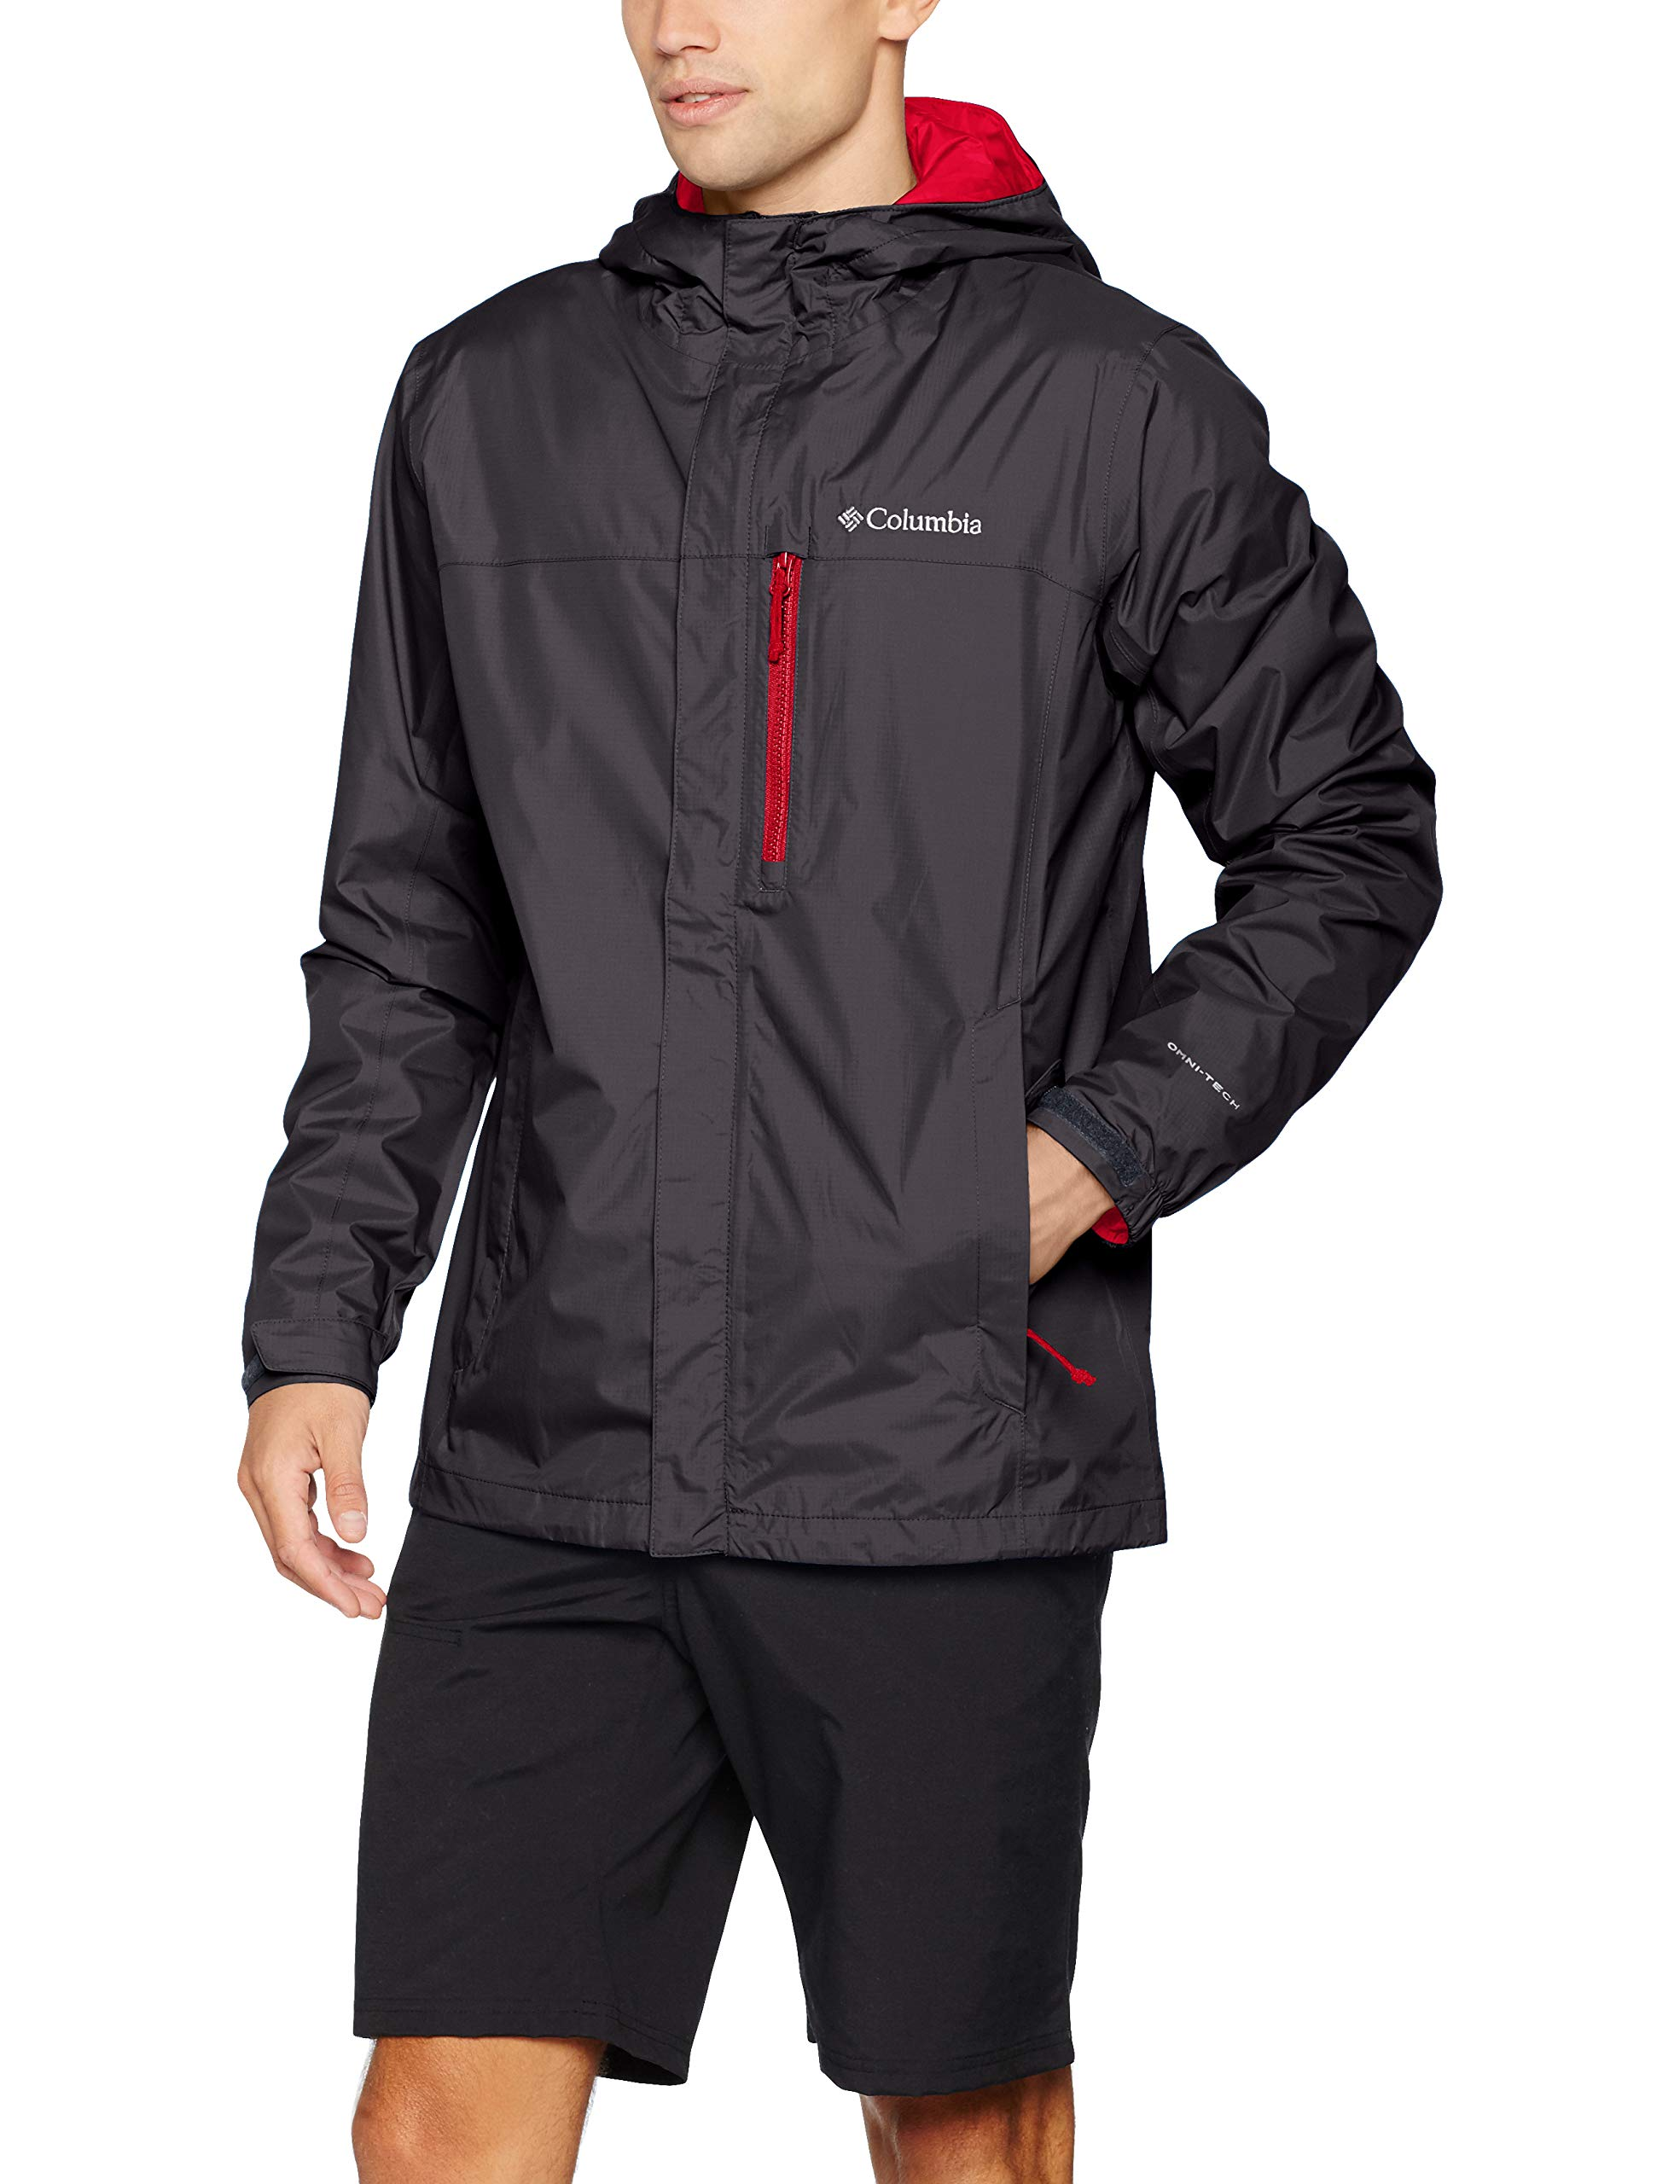 Columbia 1760061 Pouring Adventure II Jacket Chaqueta impermeable, Hombre, Nailon